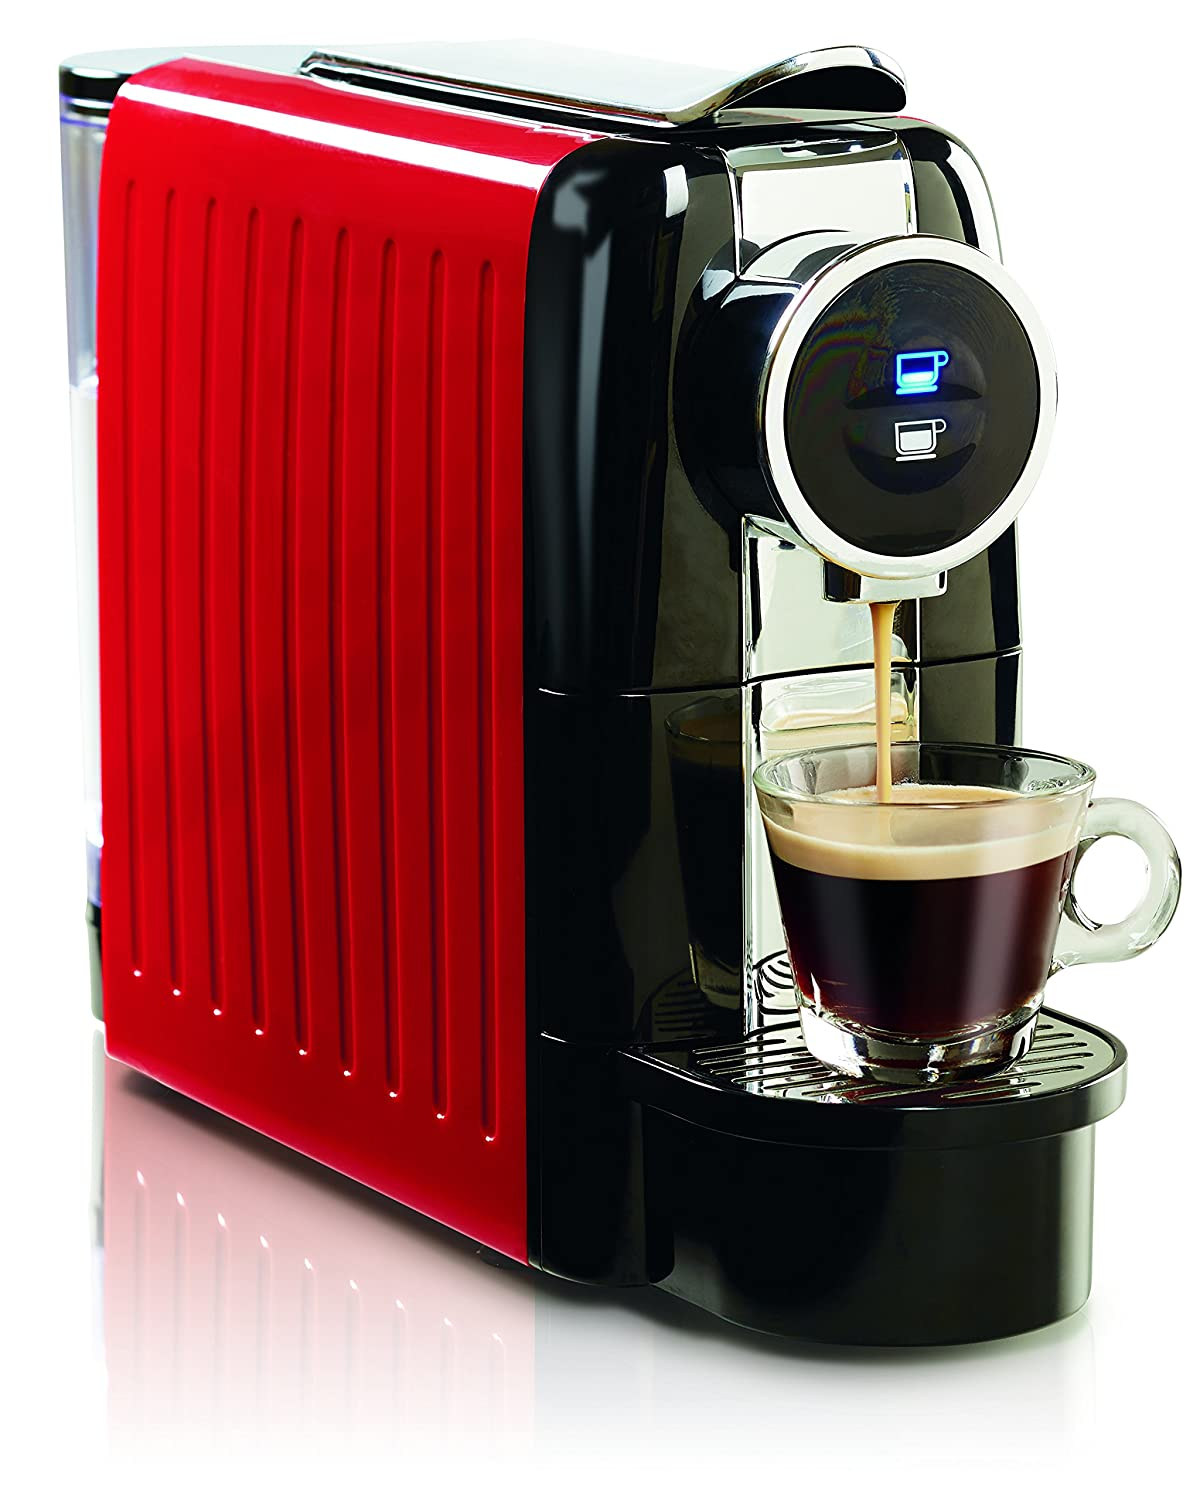 Buying Guide: Features to Look for in a Coffee Maker